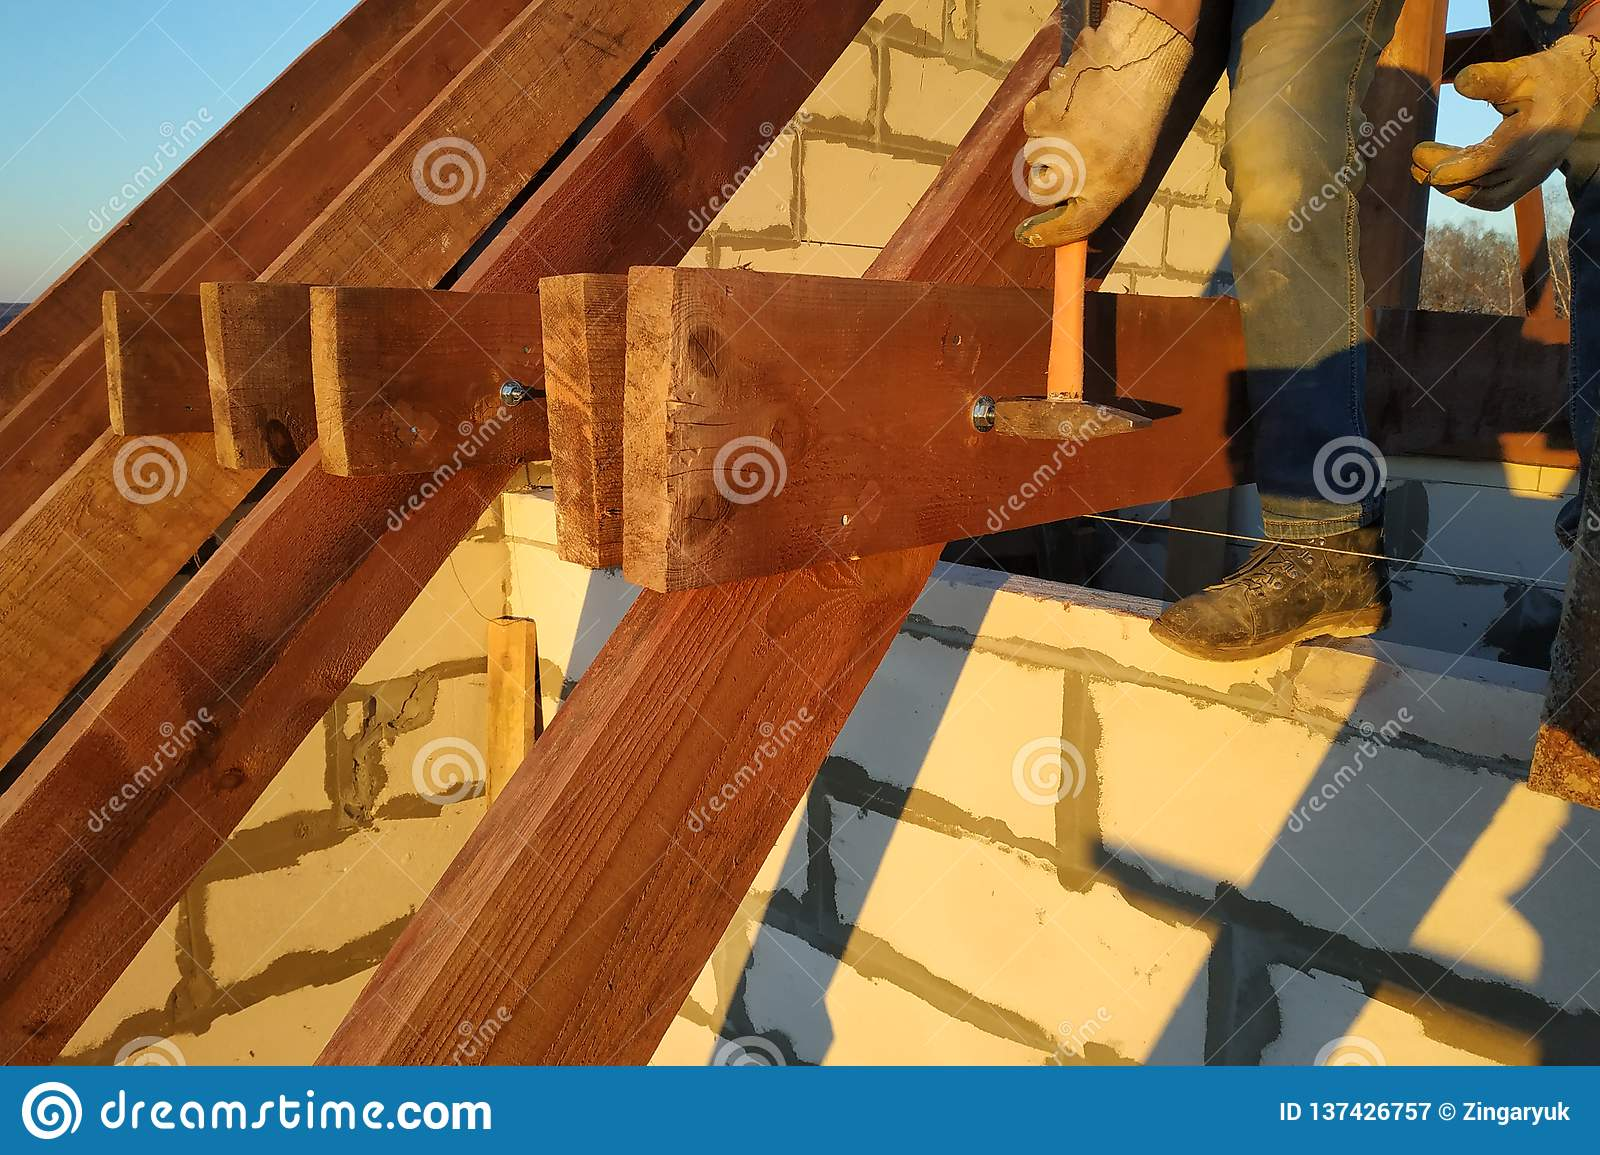 The worker claps the studs with a hammer on the rafters, building a roof